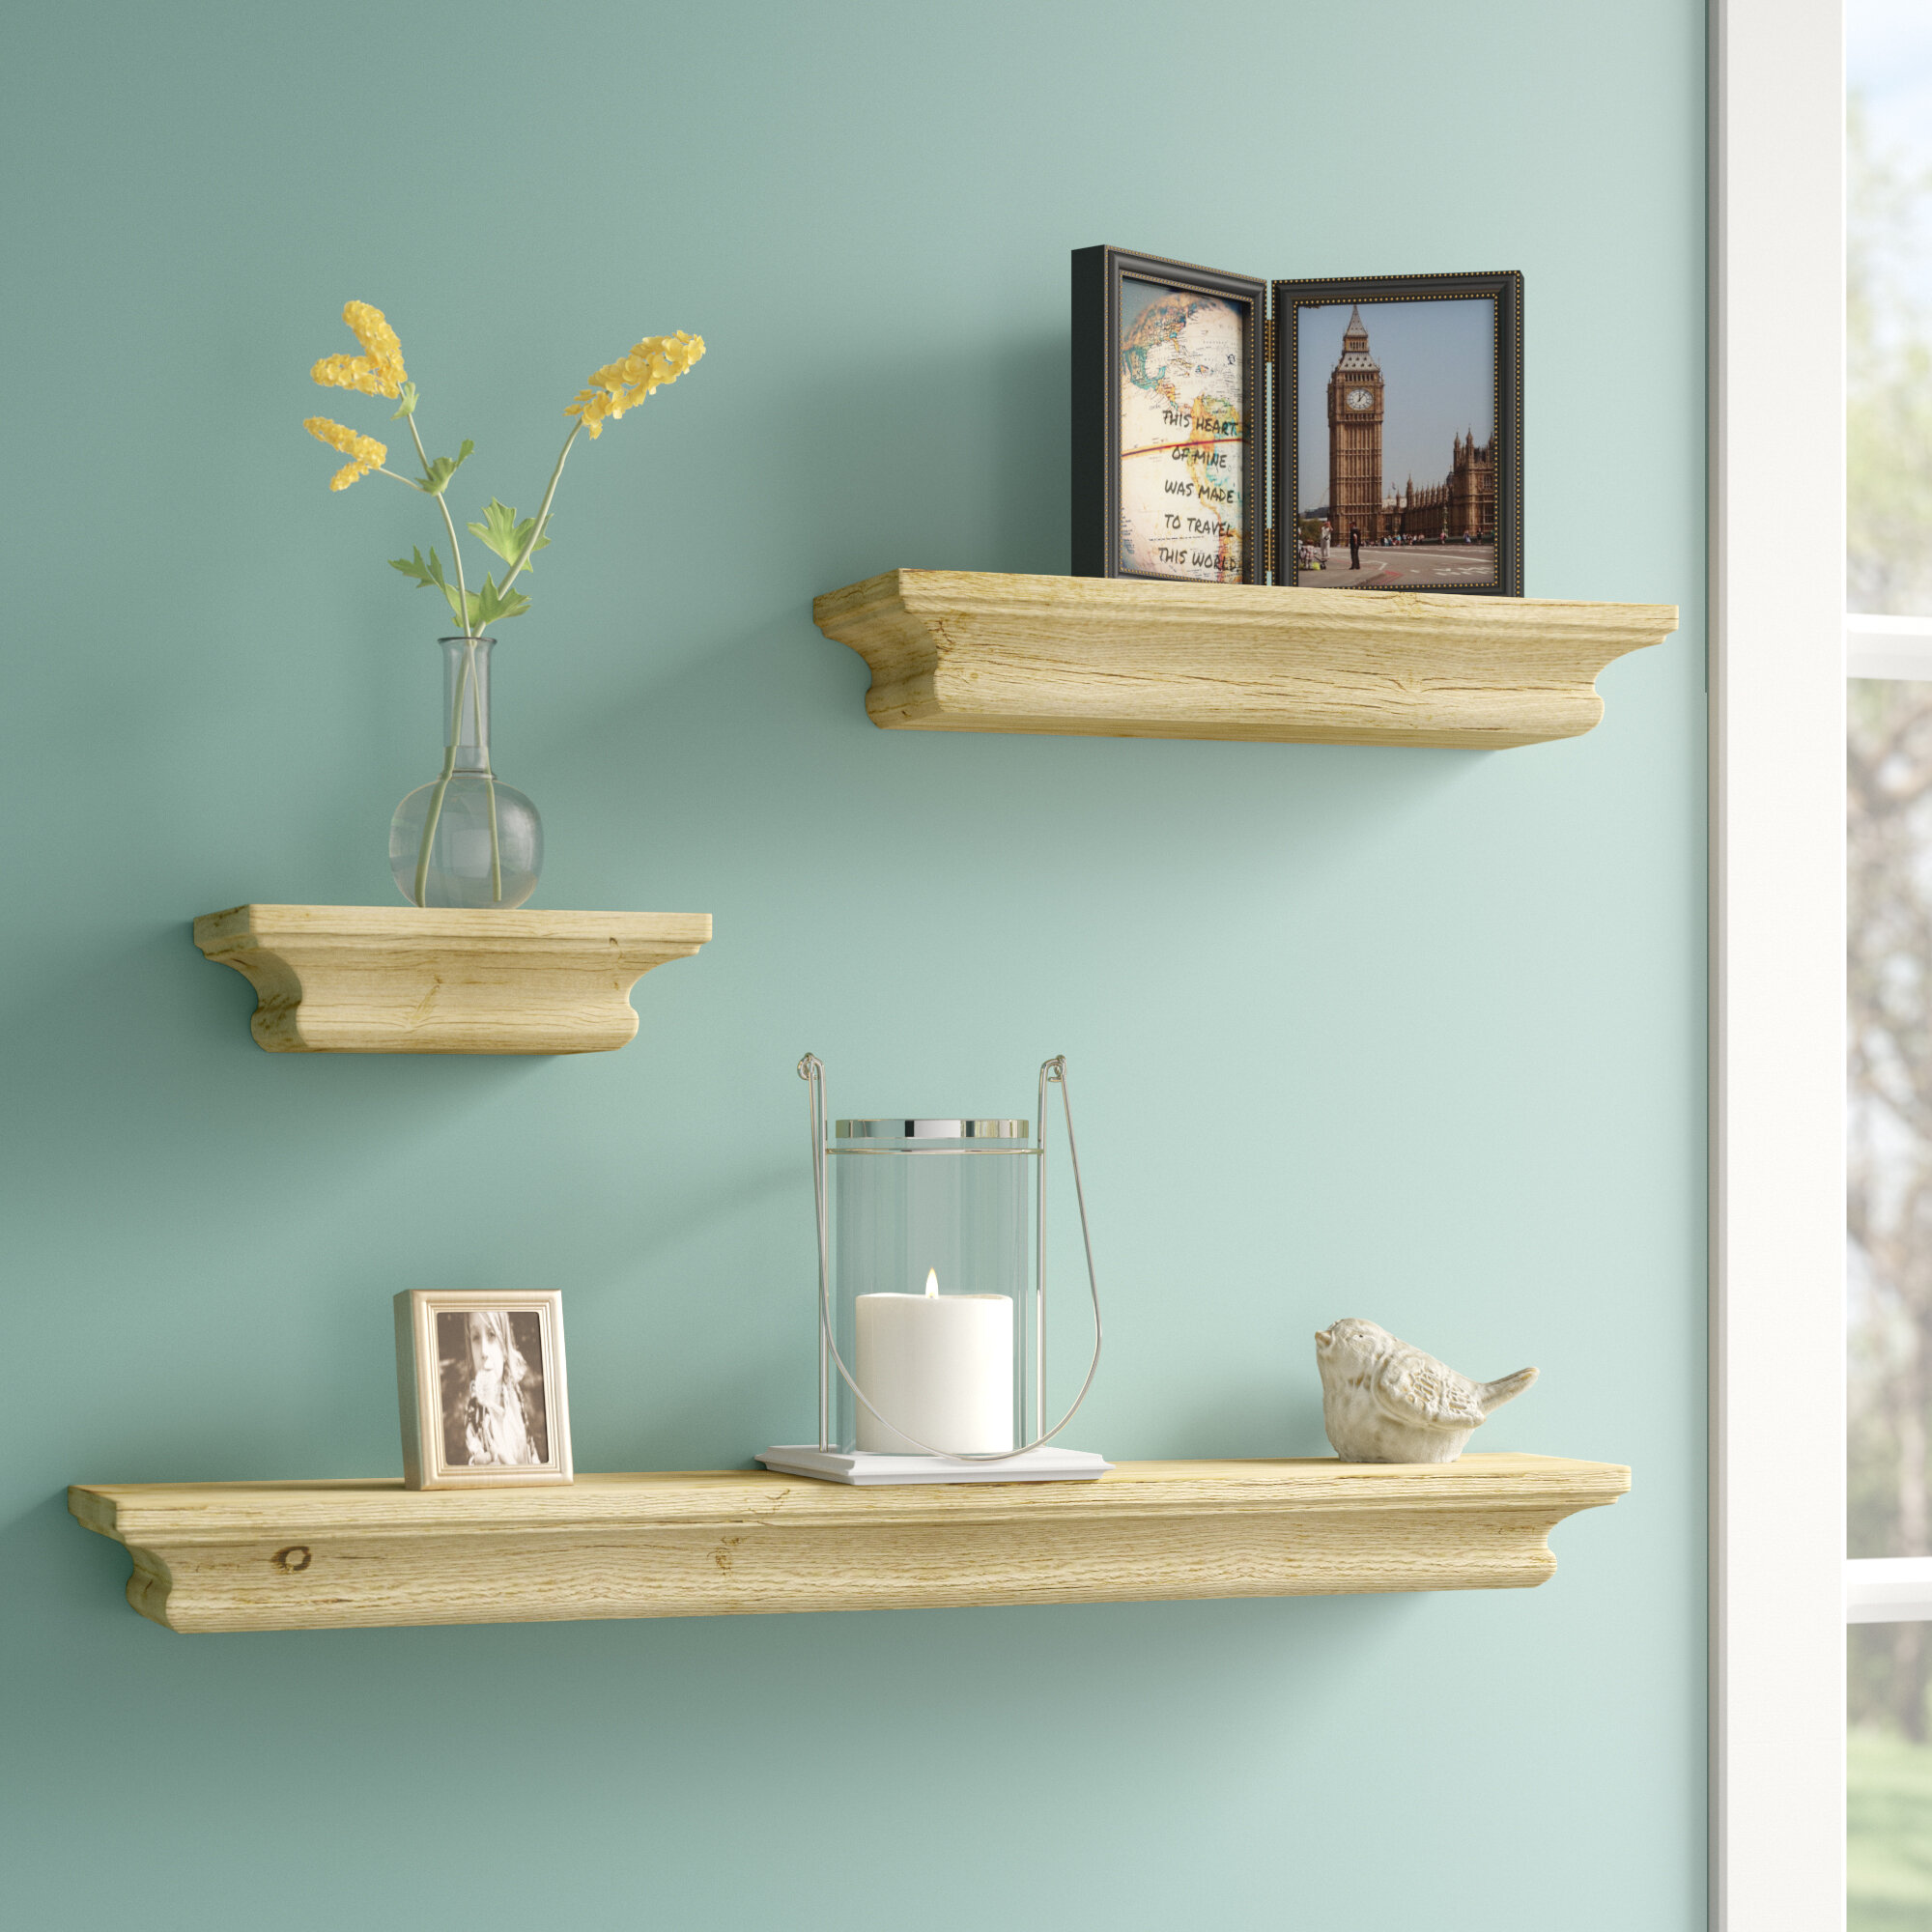 Alcott Hill 3 Piece Floating Shelf Set & Reviews | Wayfair